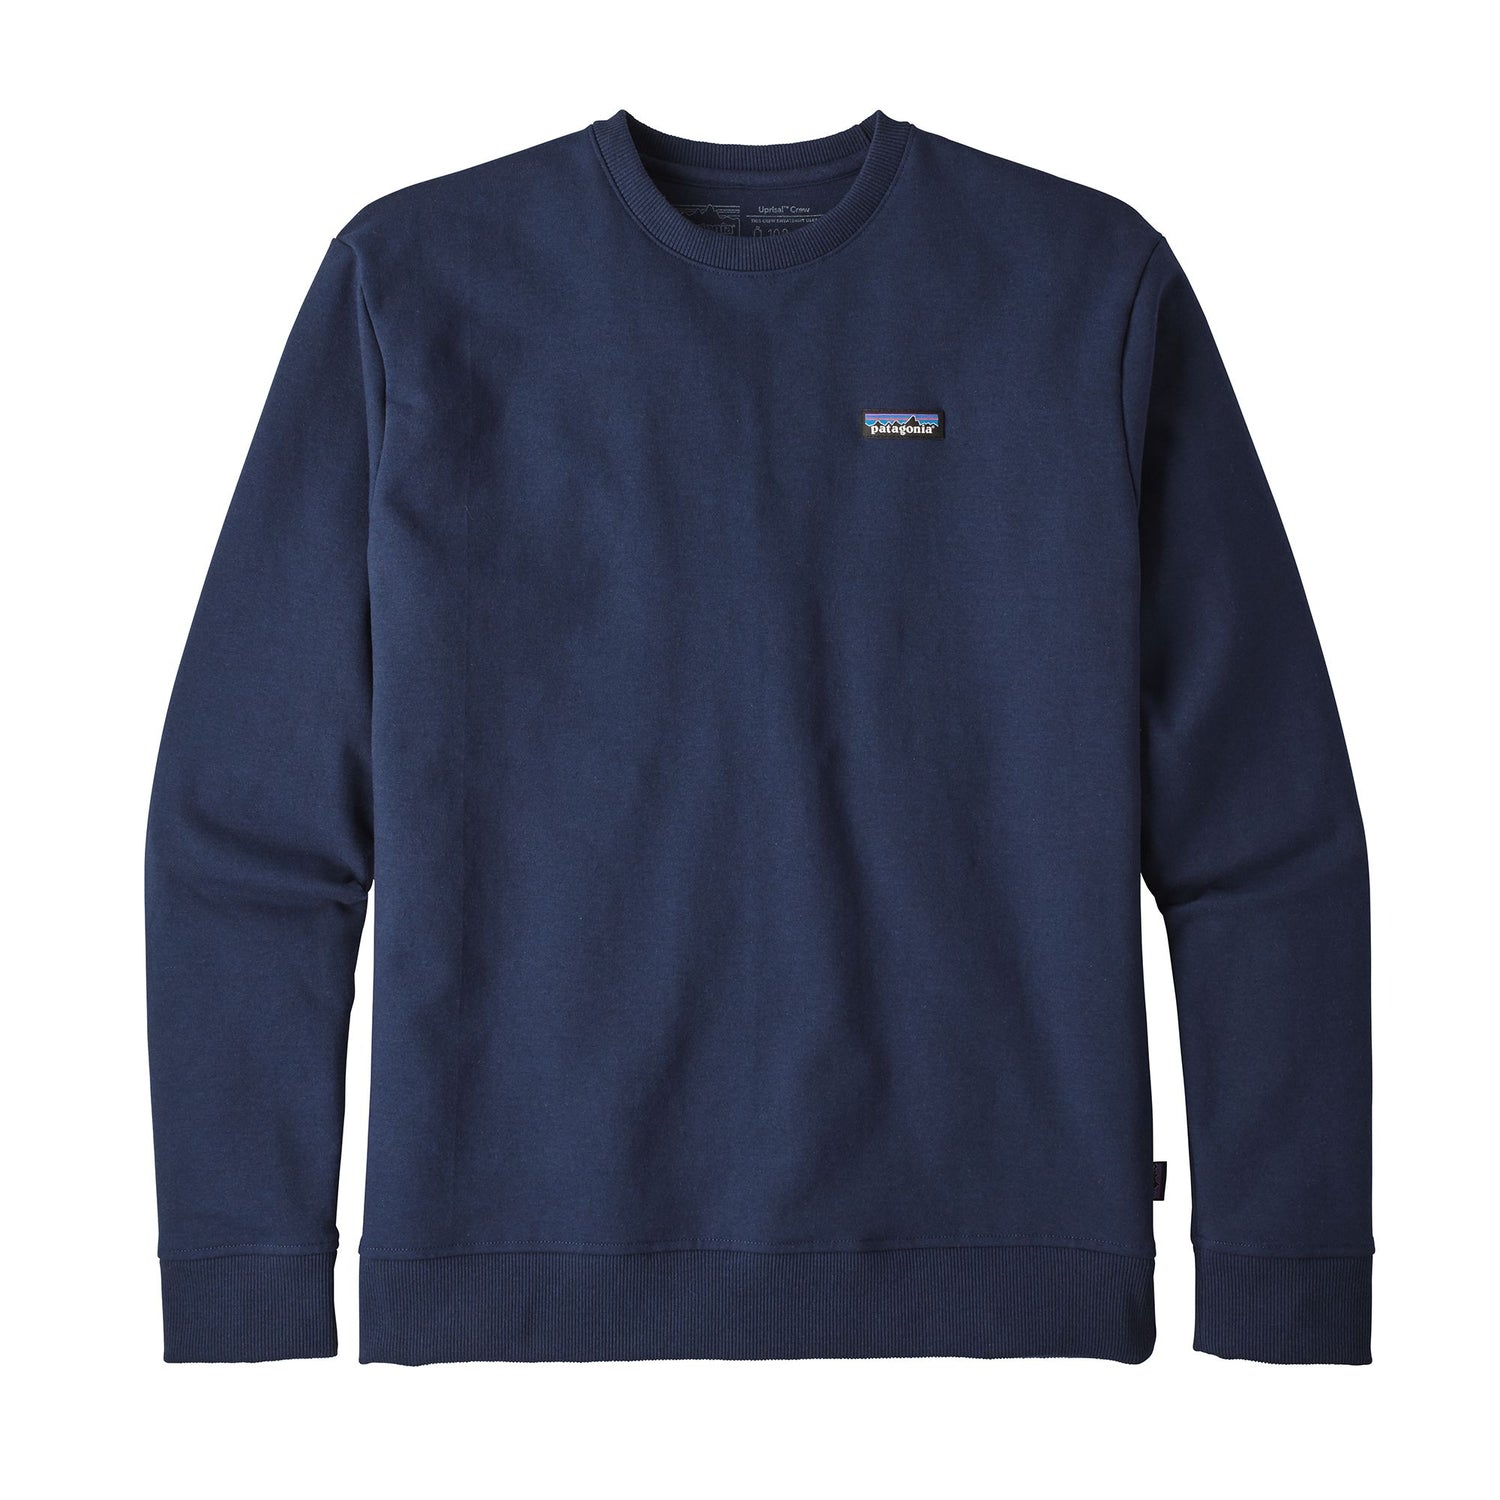 Jersey P-6 Label Uprisal Crew  - Classic Navy